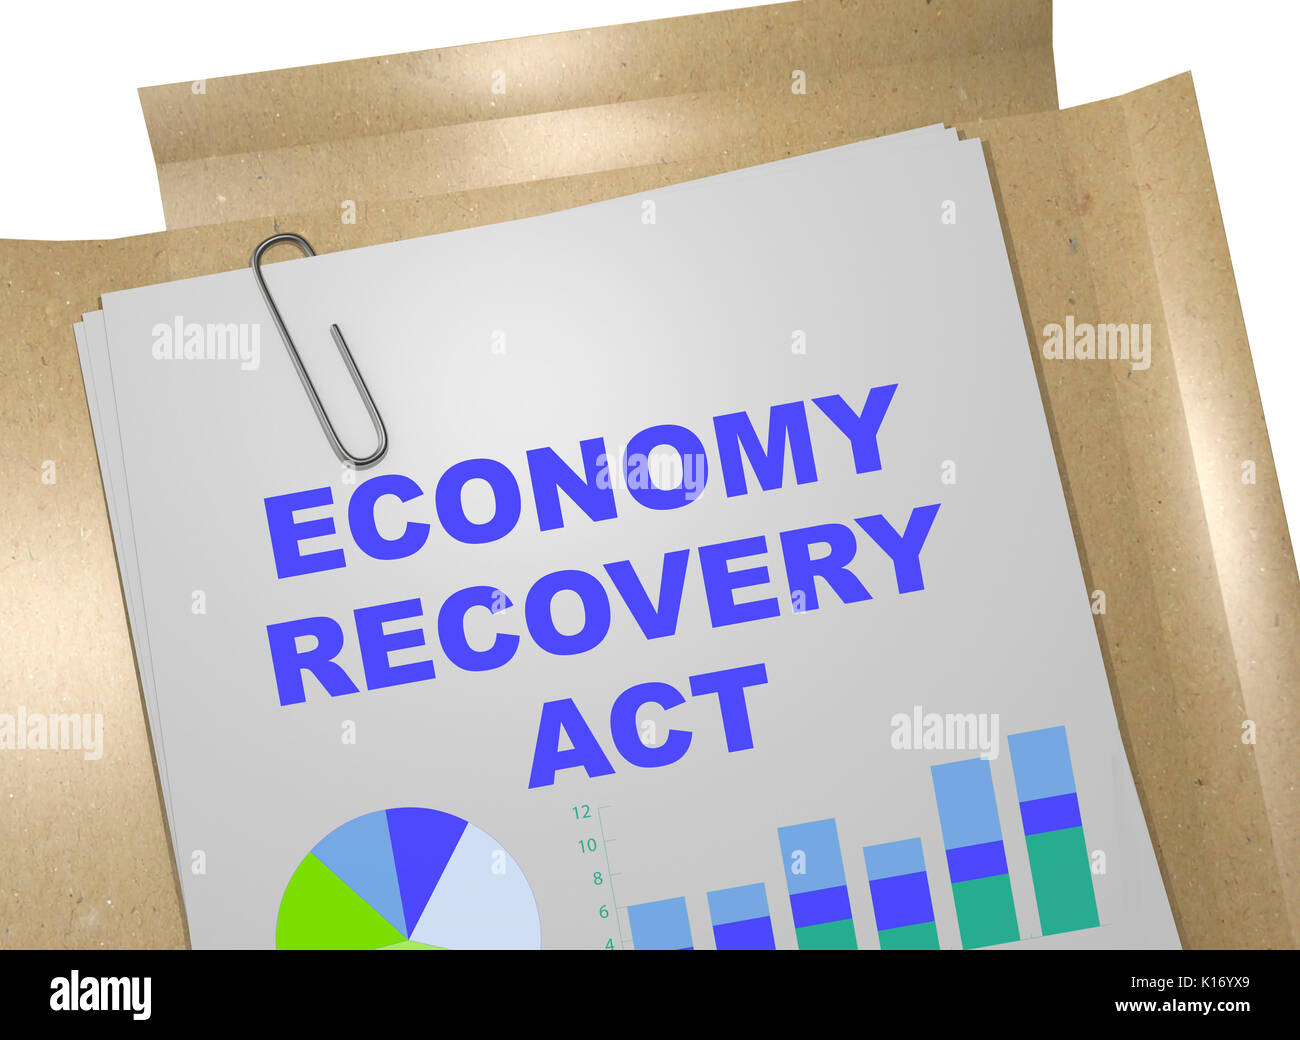 3D illustration of 'ECONOMY RECOVERY ACT' title on business document - Stock Image